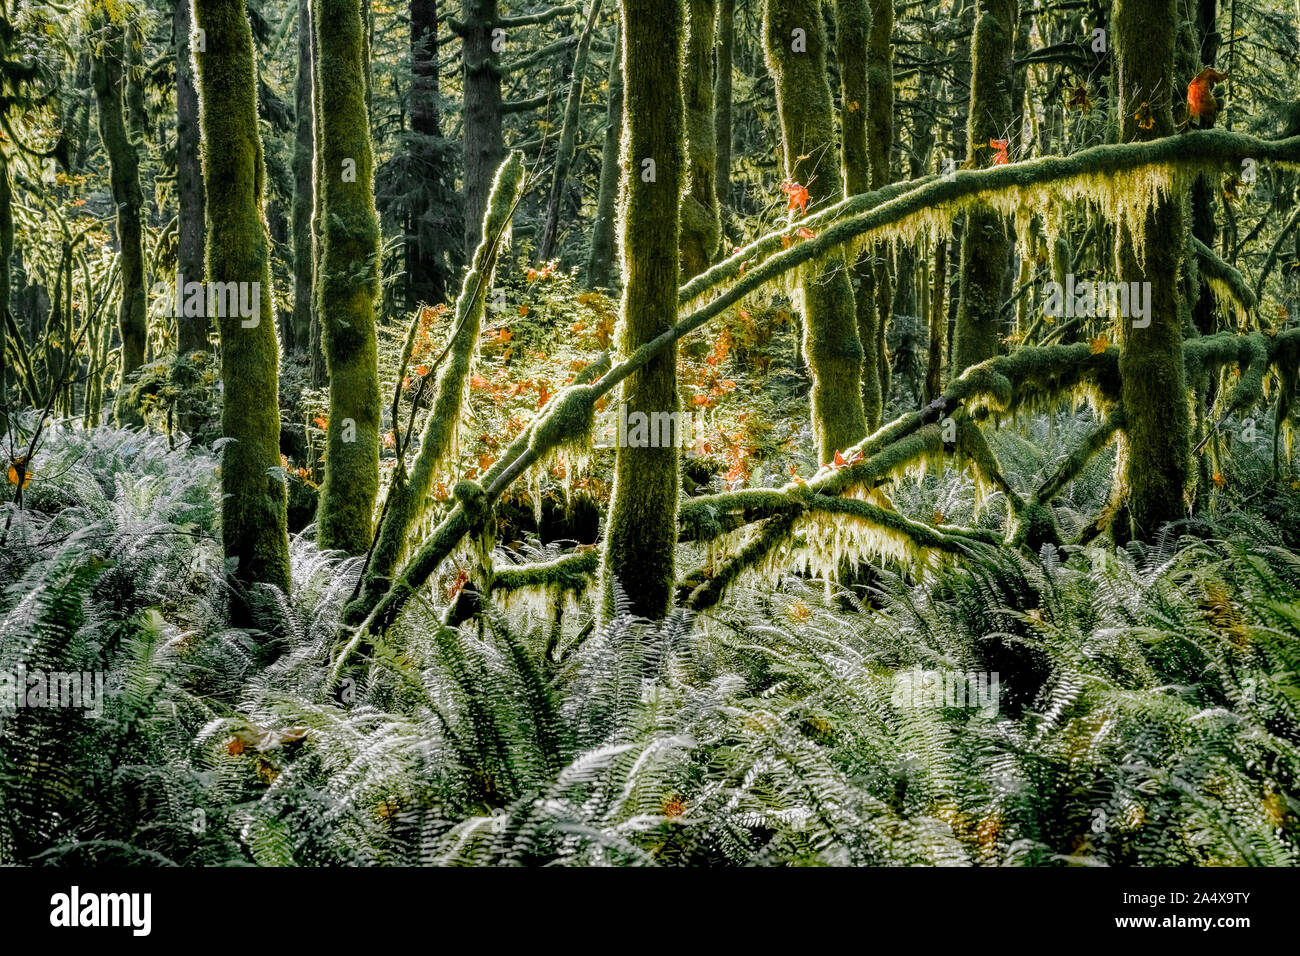 Western sword fern understory, previously logged, second growth forest, Golden Ears Provincial Park, Maple Ridge, British Columbia, Canada Stock Photo